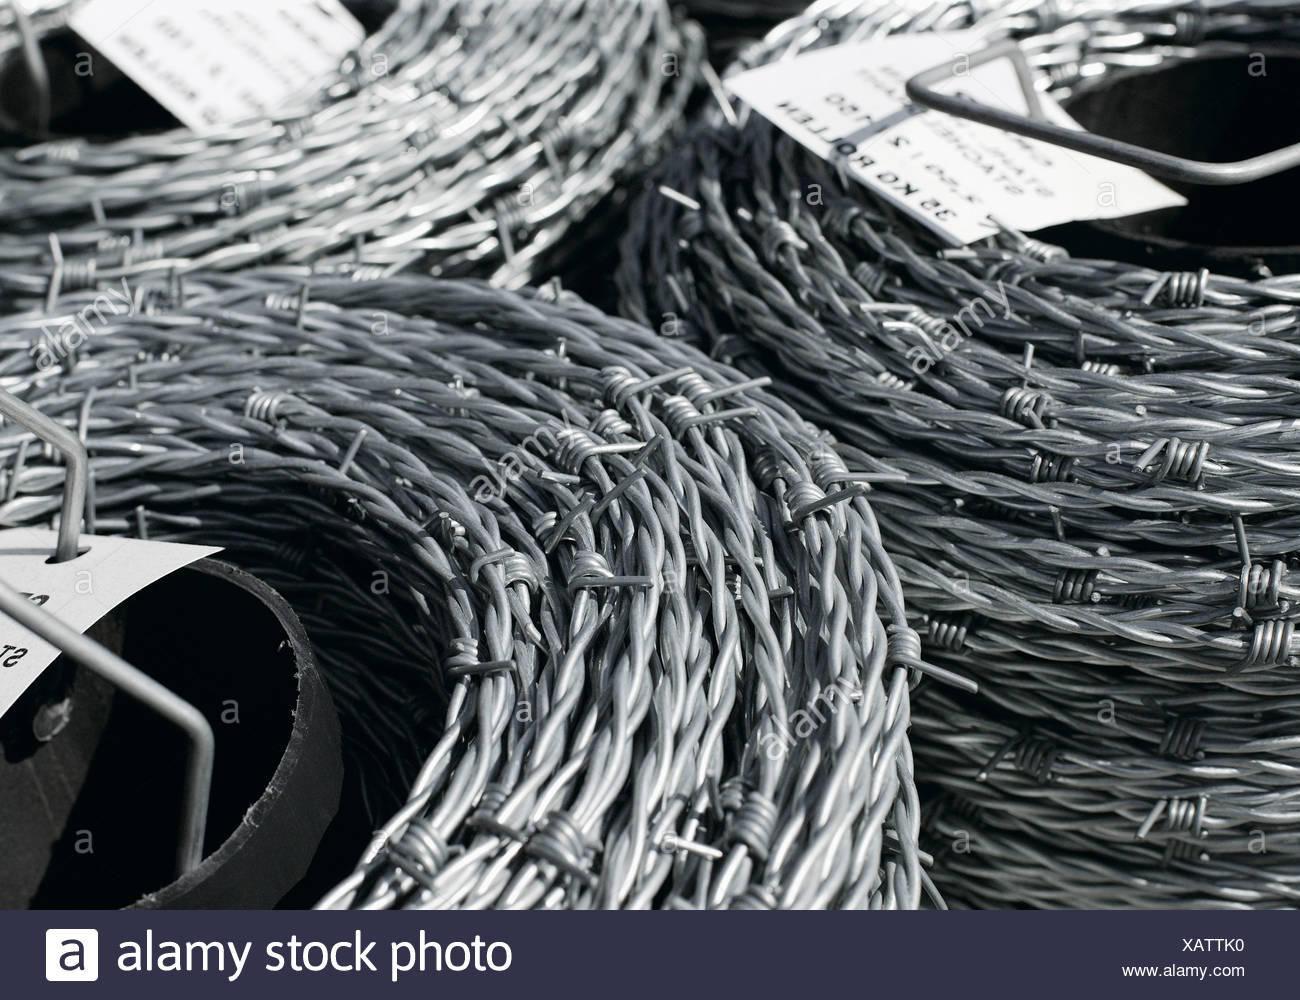 Coils of barb wire, close up Stock Photo: 282058644 - Alamy